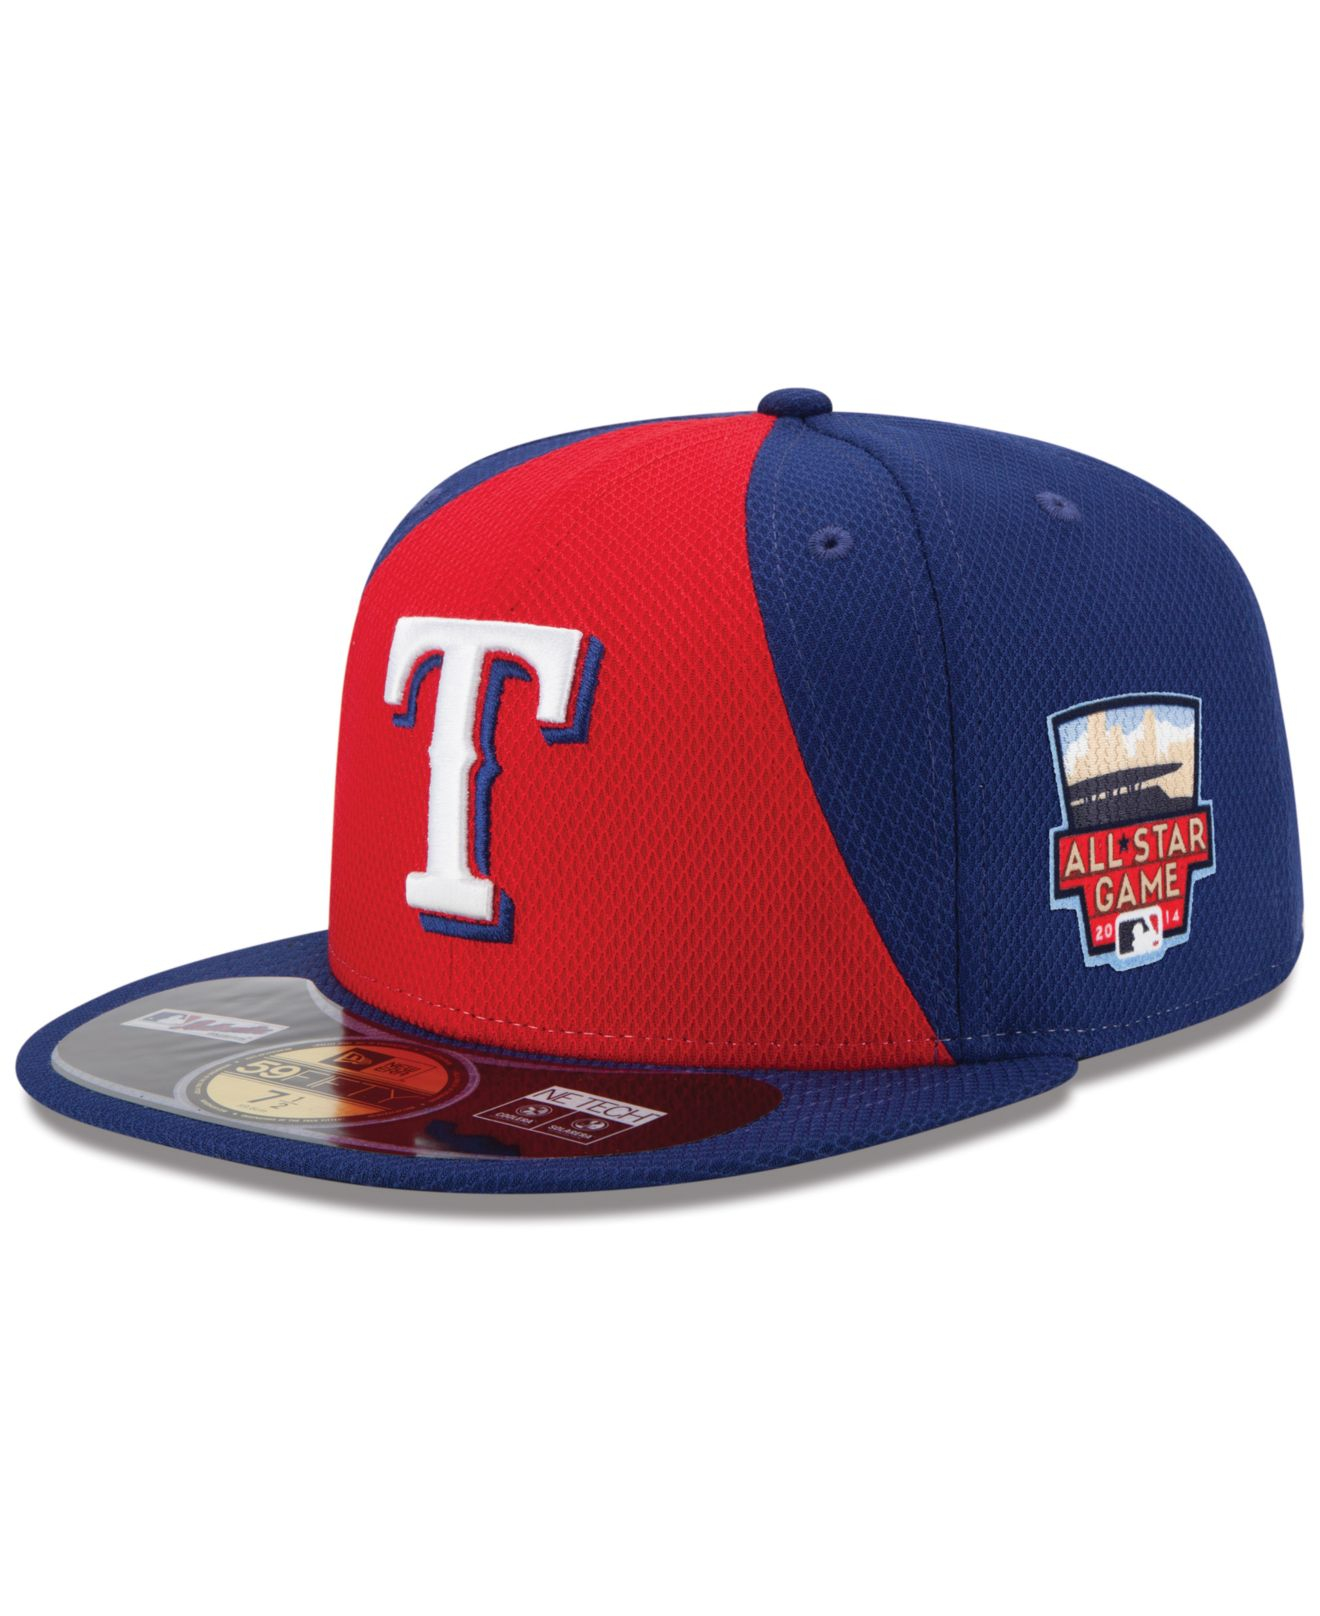 new concept 5f24f 378d6 ... reduced lyst ktz texas rangers 2014 all star game patch 59fifty cap in  red for men